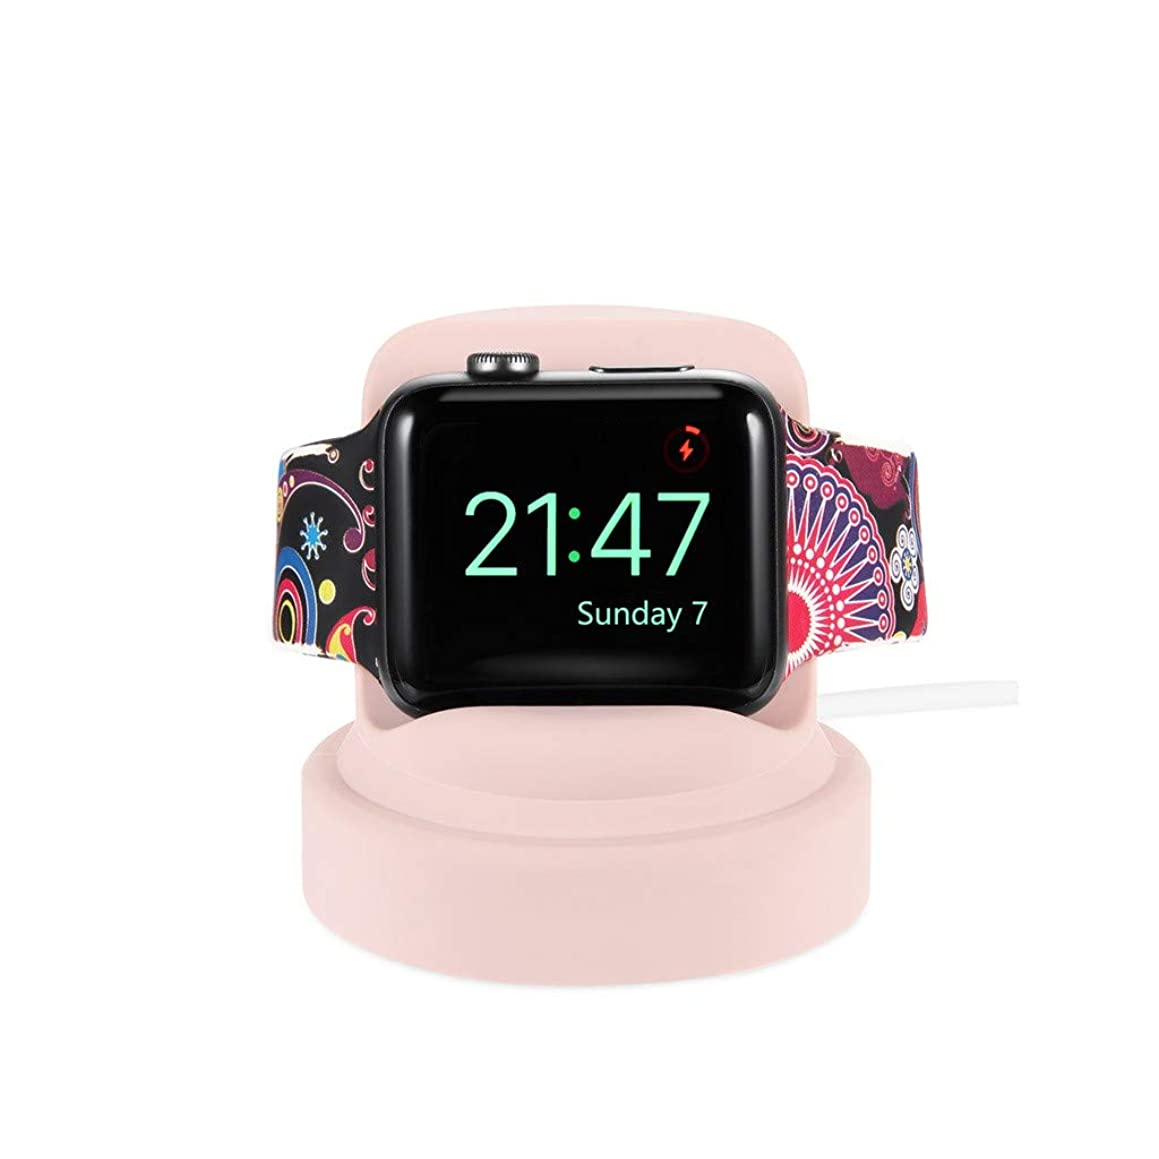 certainPL Compatible Apple Watch Stand, Silicone Charging Dock for Apple Watch Series 4 / Series 3 / Series 2 / Series 1 (Pink)